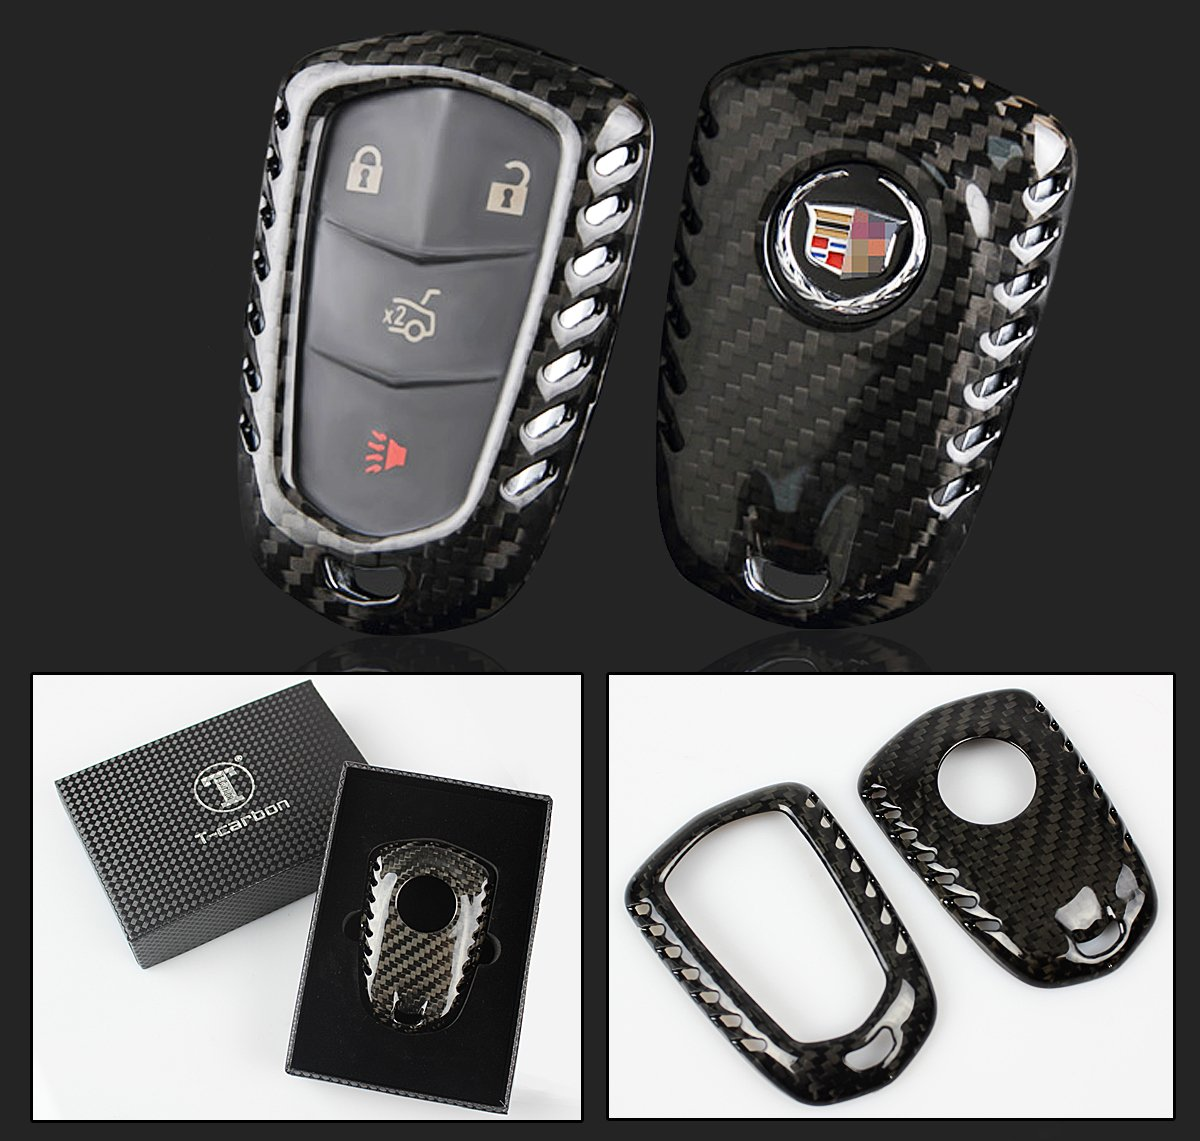 Luxury Real Carbon Fiber SNAP ON CASE for Cadillac CTS ATS V Smart Key FOB Cuztom Tuning